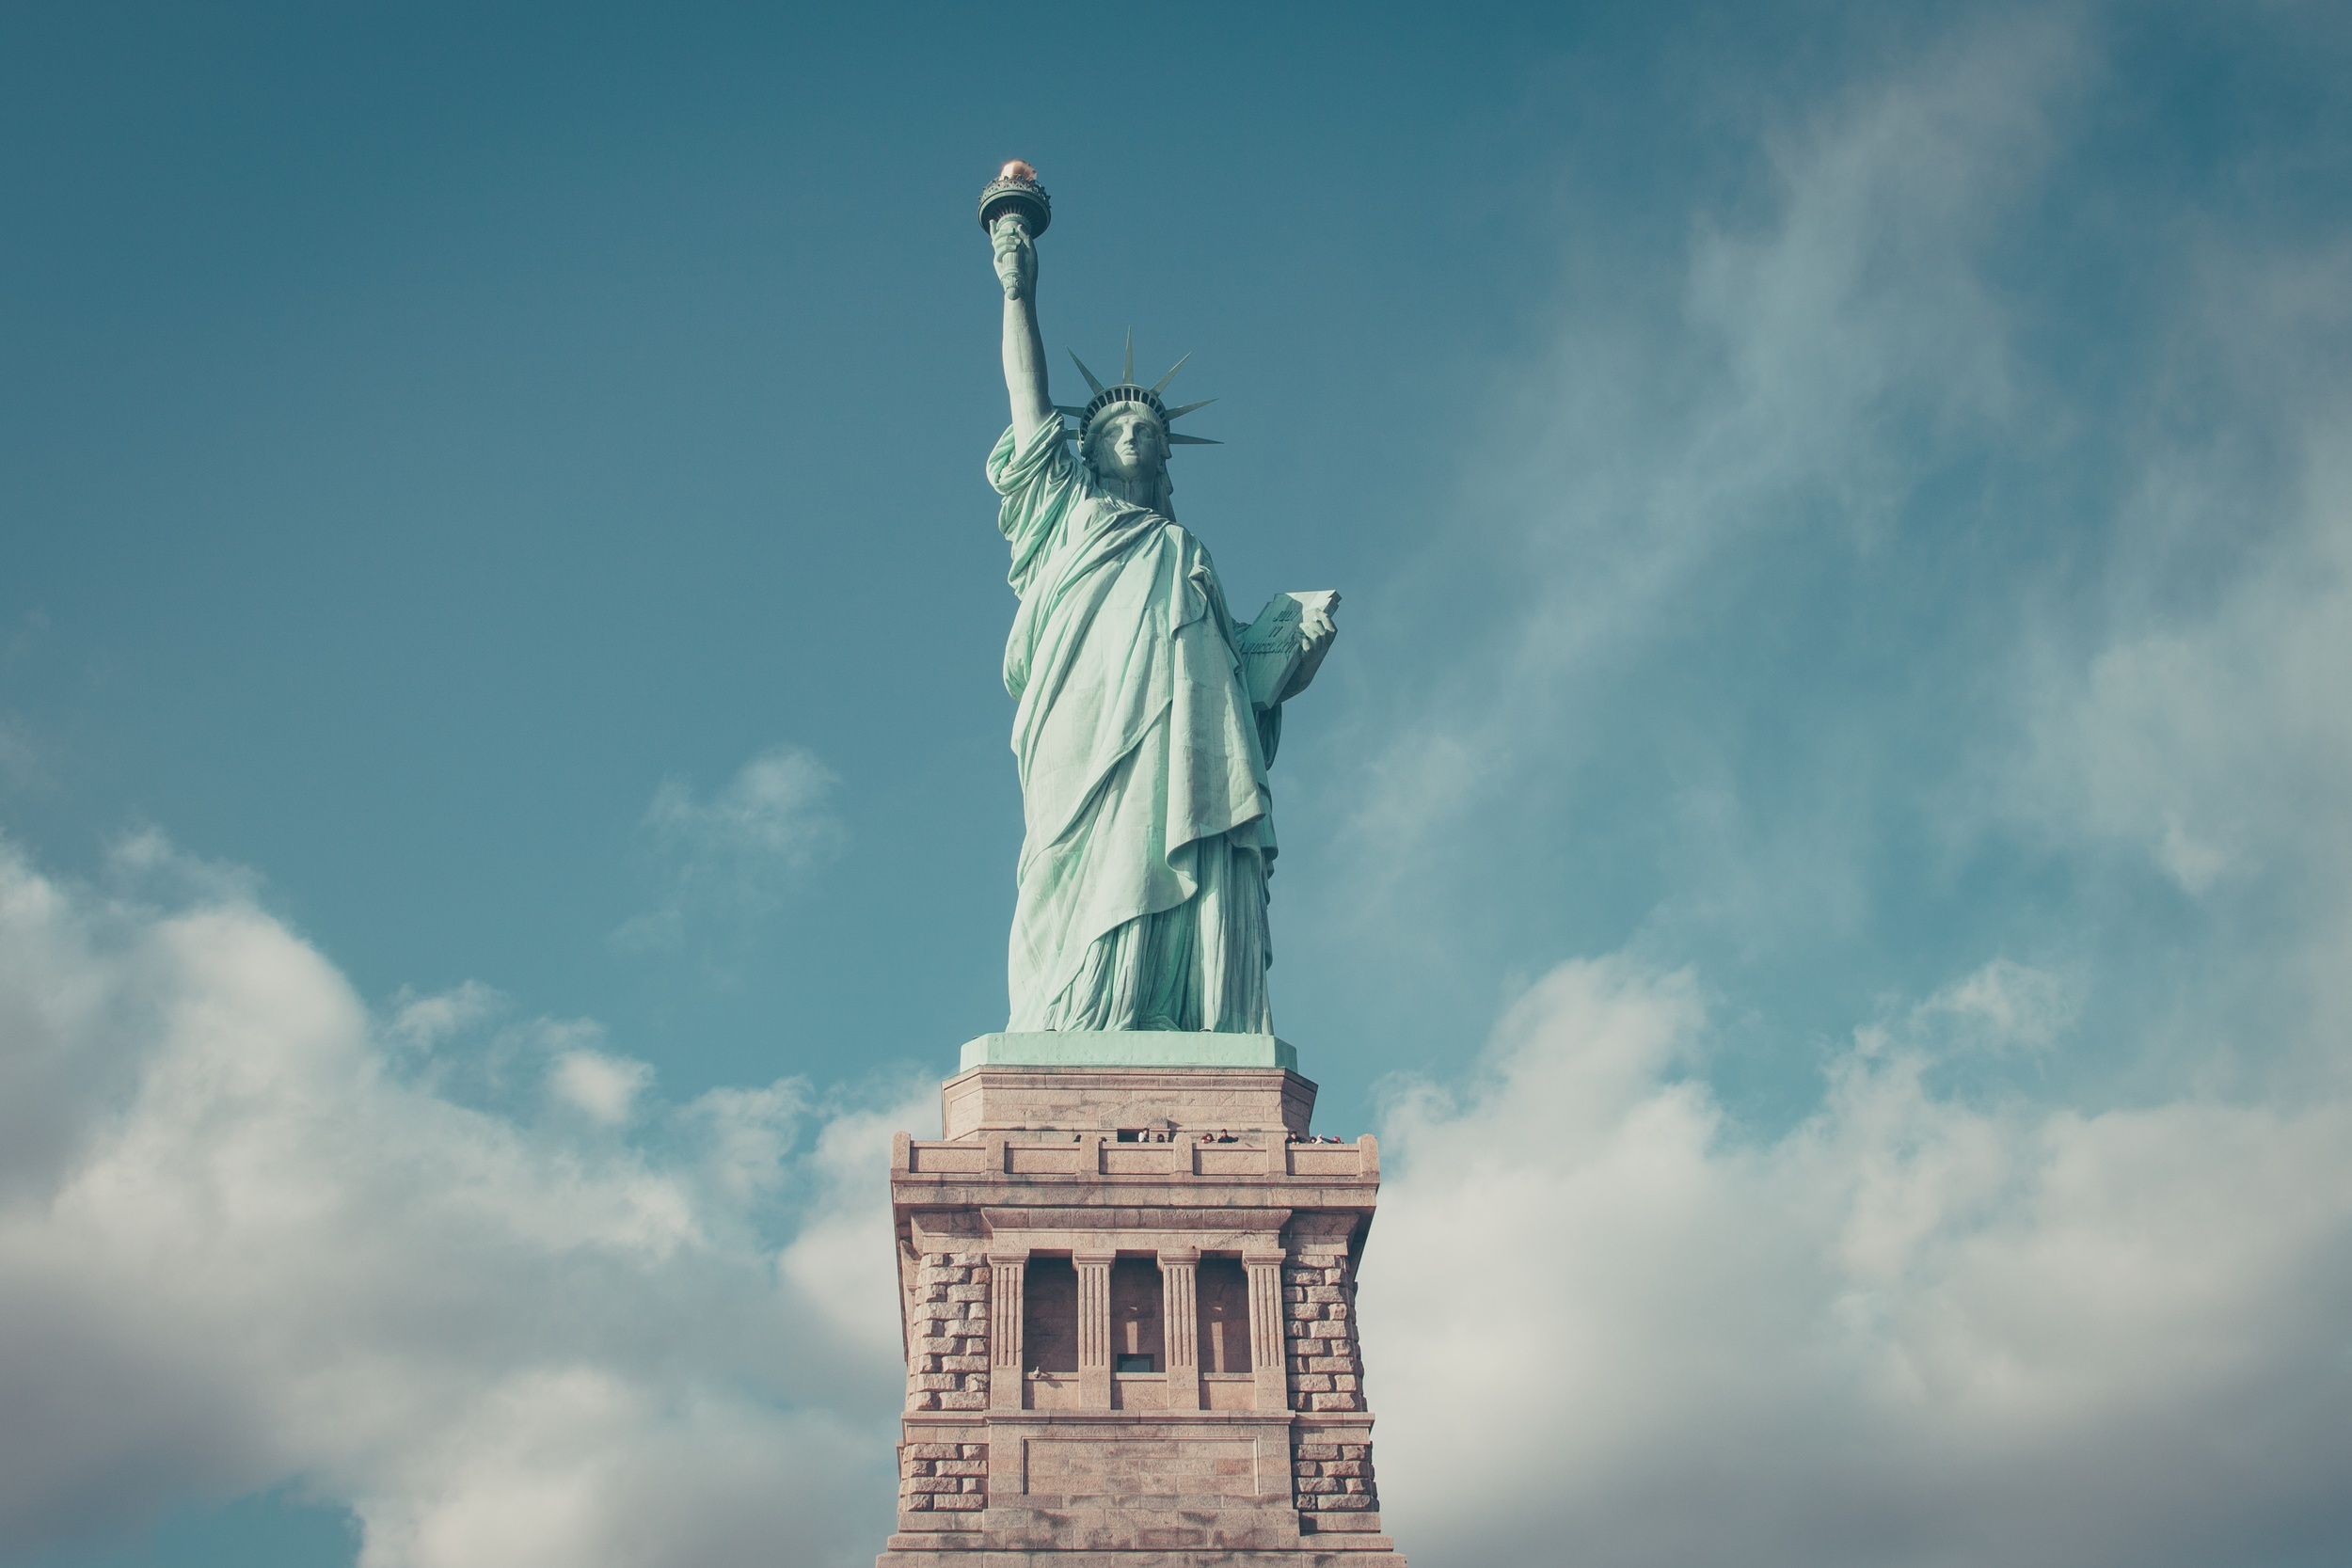 Free High Resolution Statue of Liberty